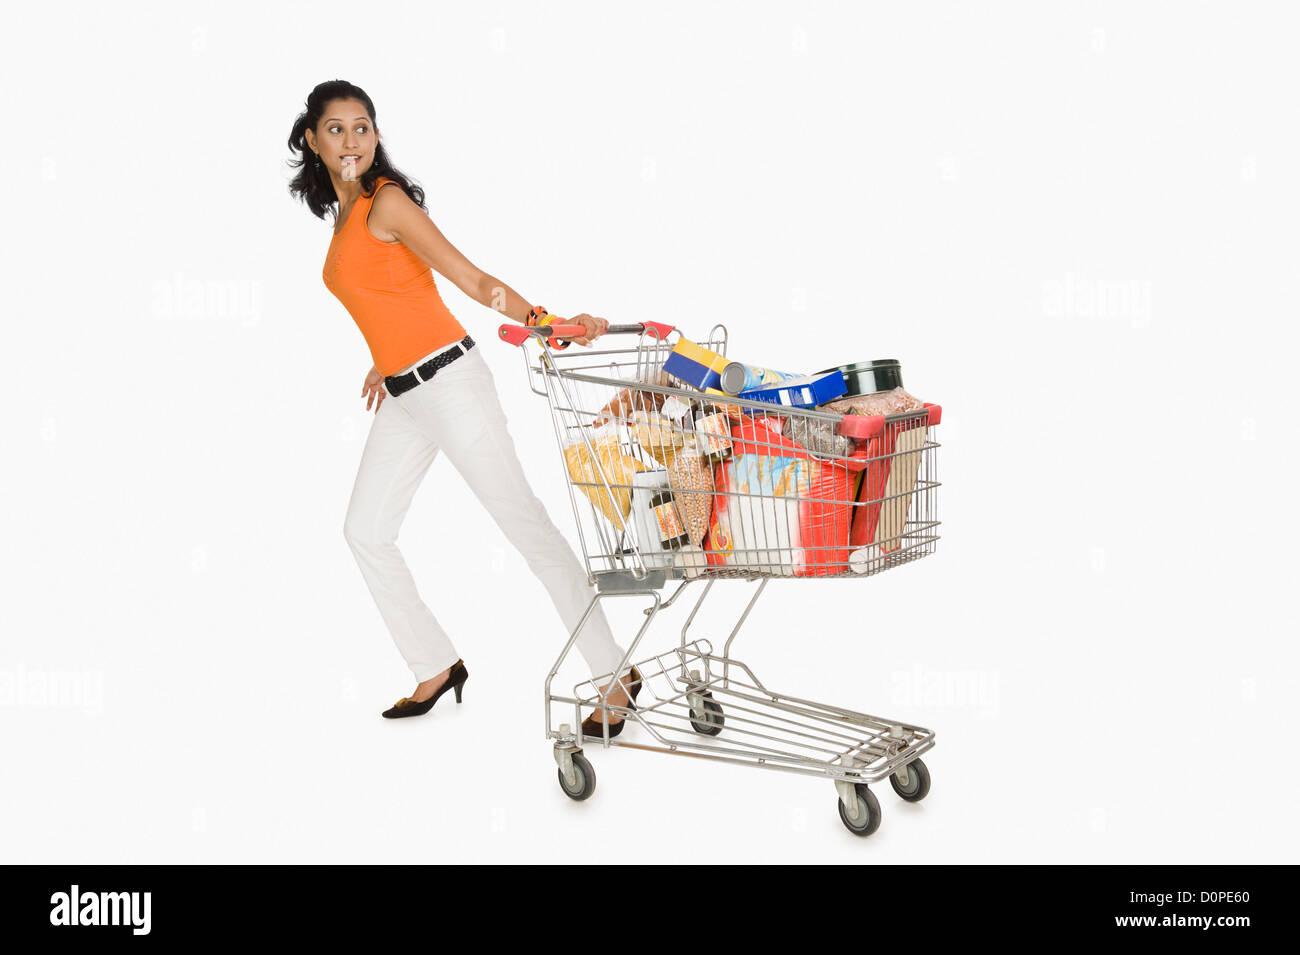 Woman pulling a shopping cart and smiling - Stock Image